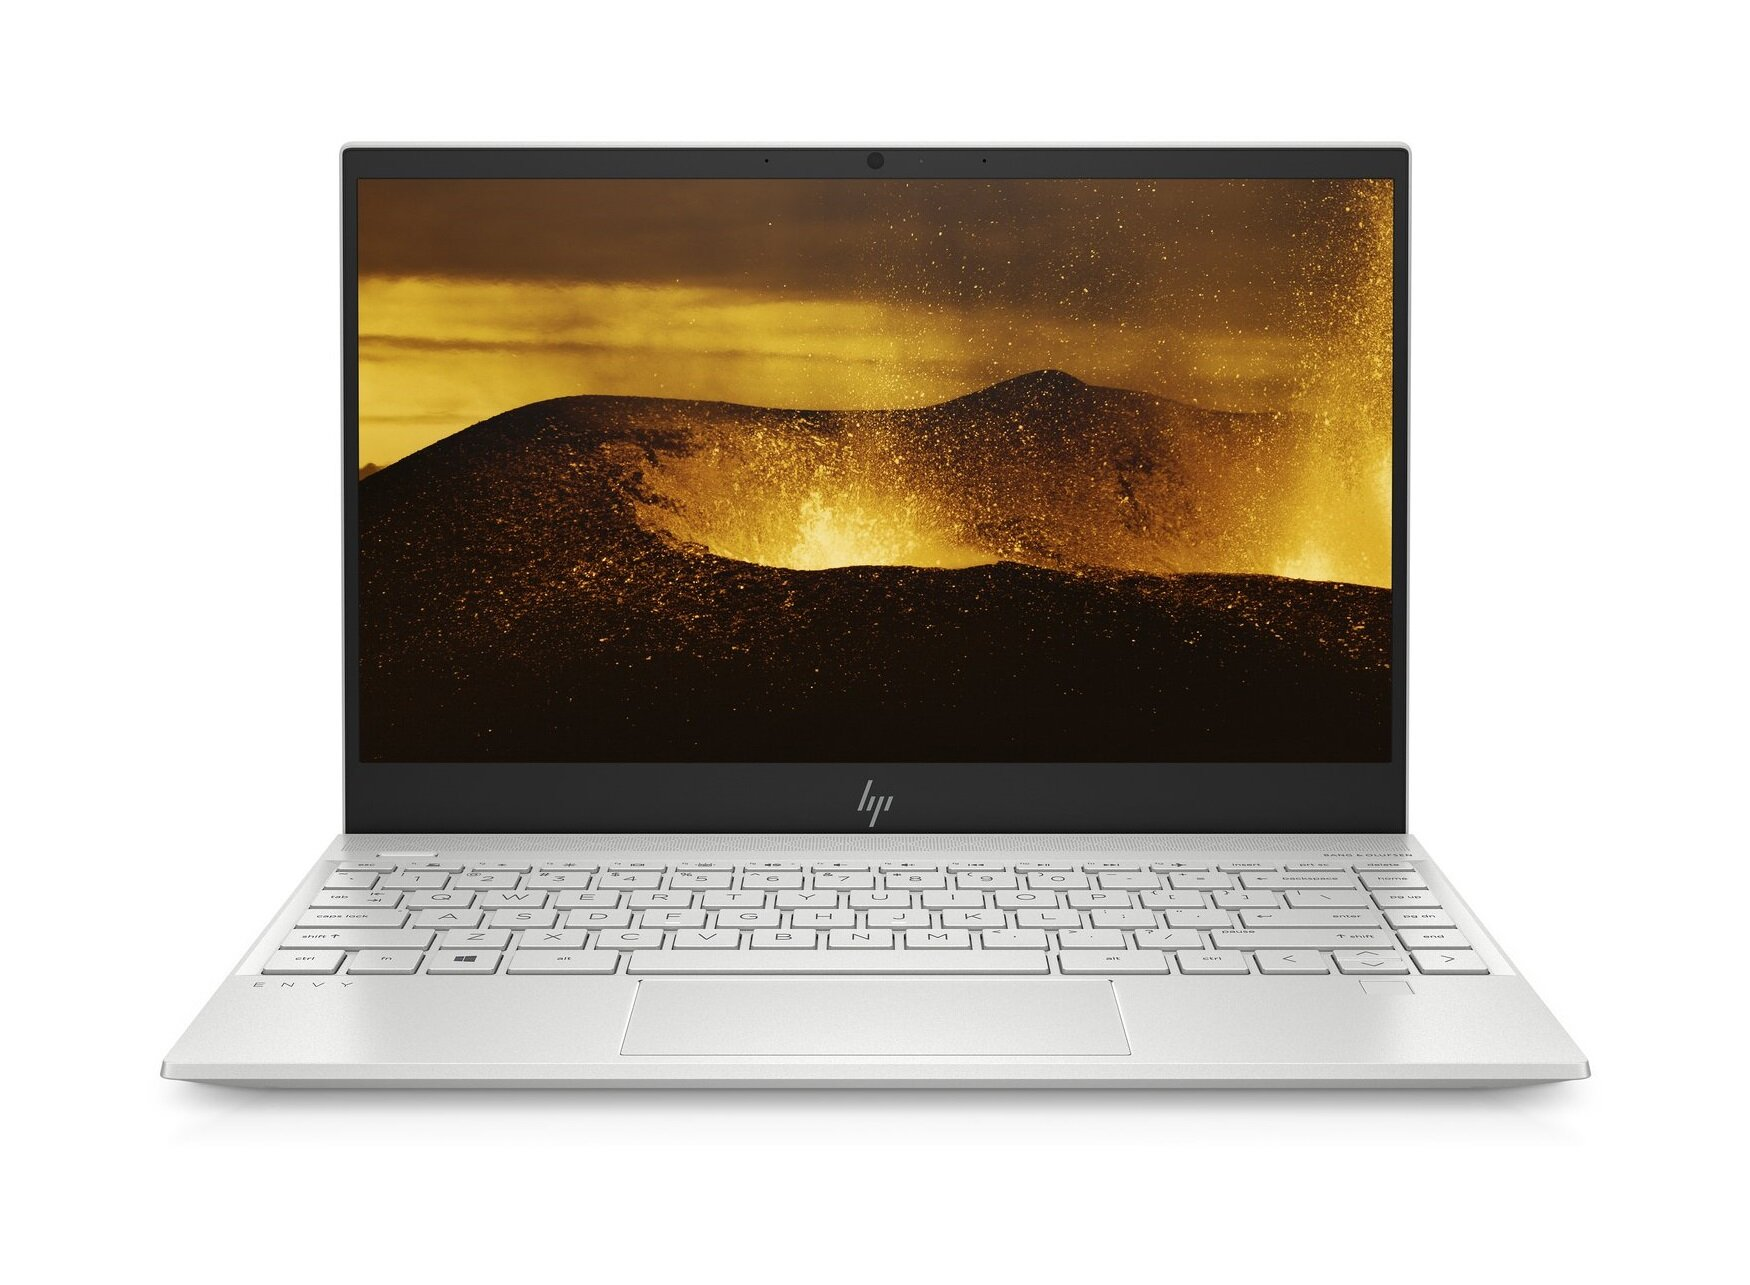 Ноутбук HP Envy 13t-aq000 (5PC43AV)